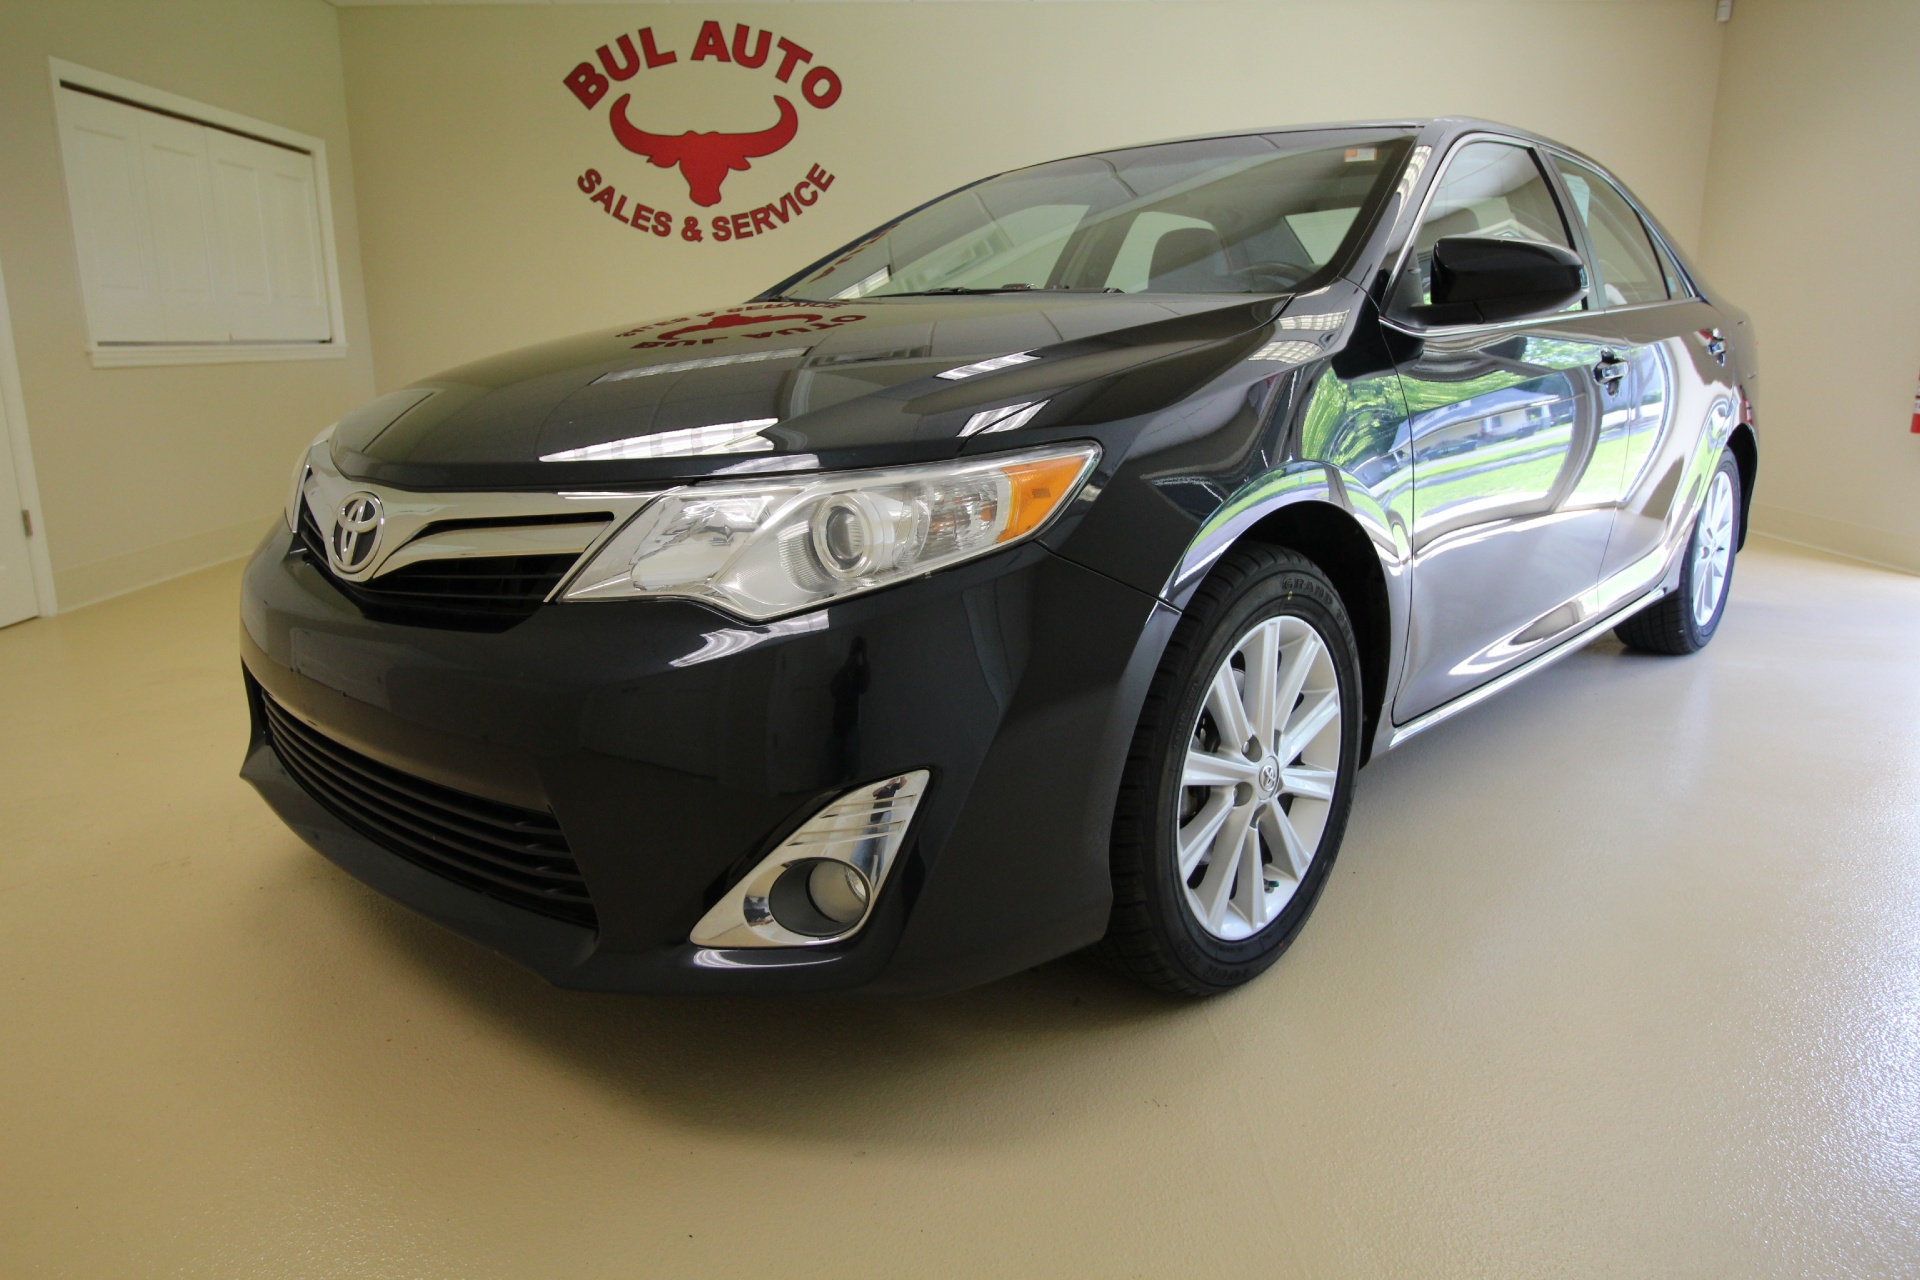 Used Cars with Sunroof for Sale Near Me New 2012 toyota Camry Xle Super Clean Back Up Camera Leather Sunroof